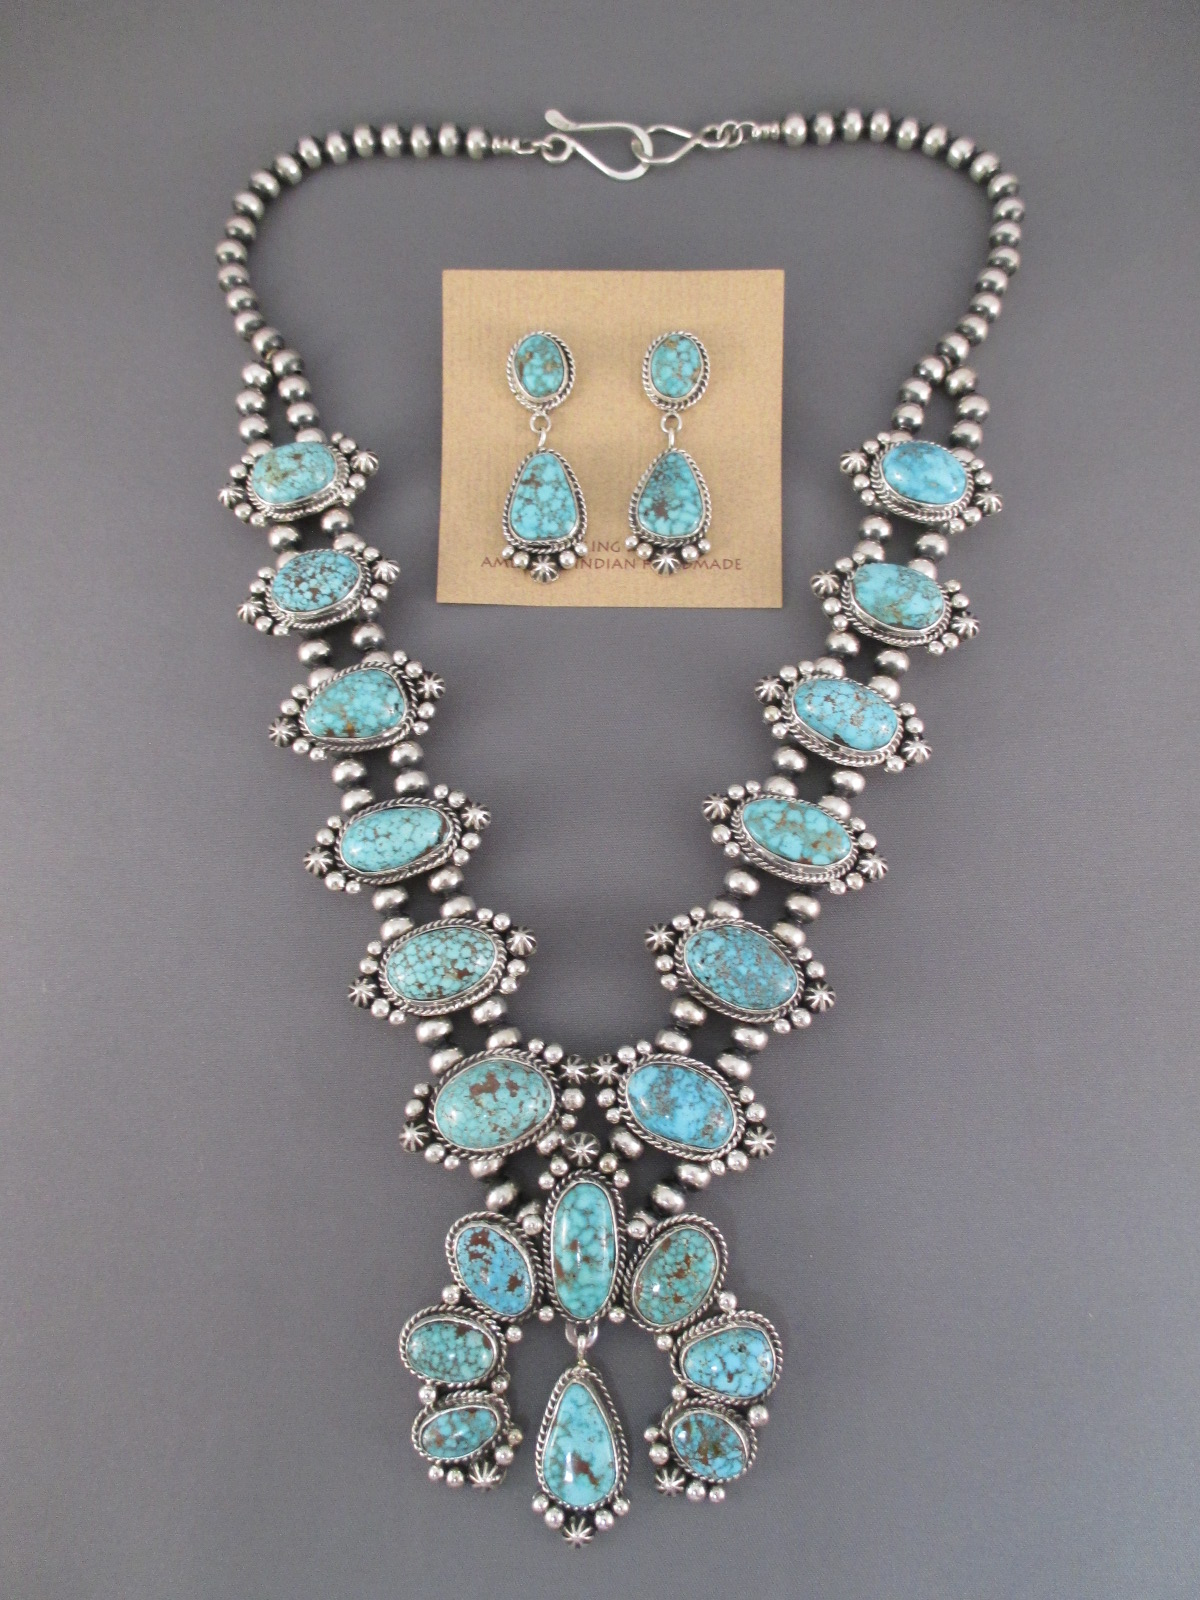 Kingman Turquoise Squash Blossom Necklace Amp Earrings Set